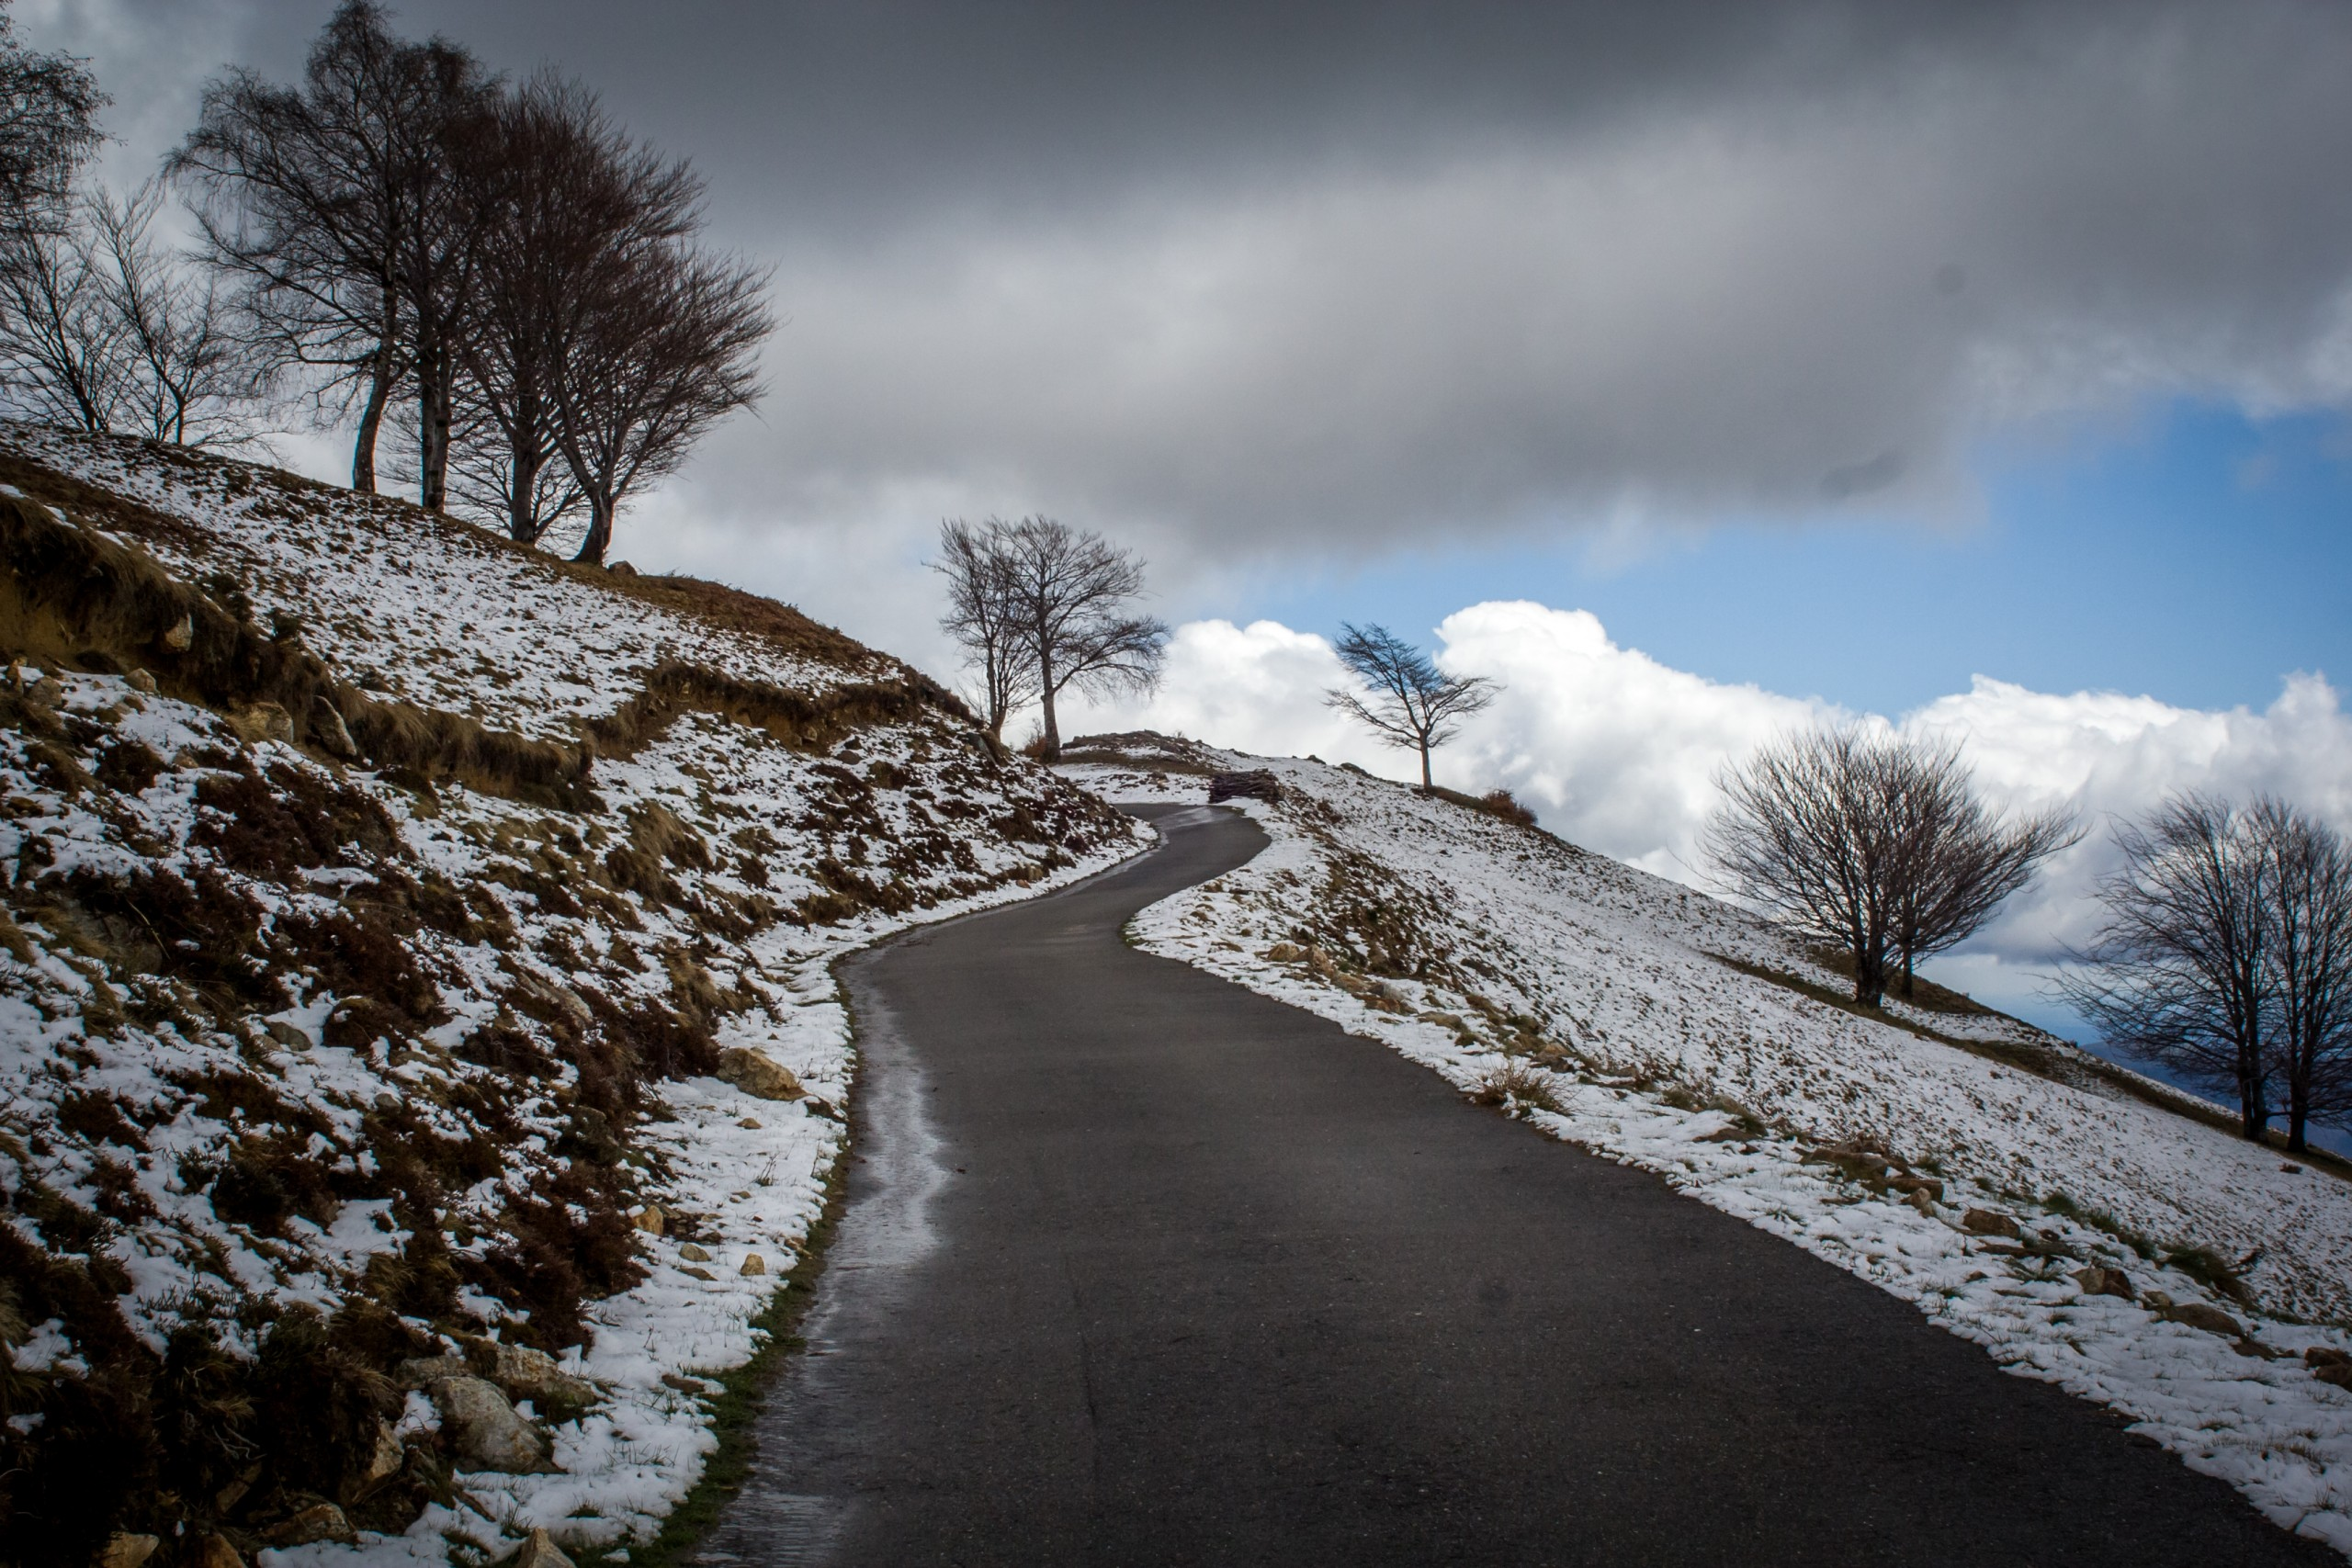 A Snowy Road Side View